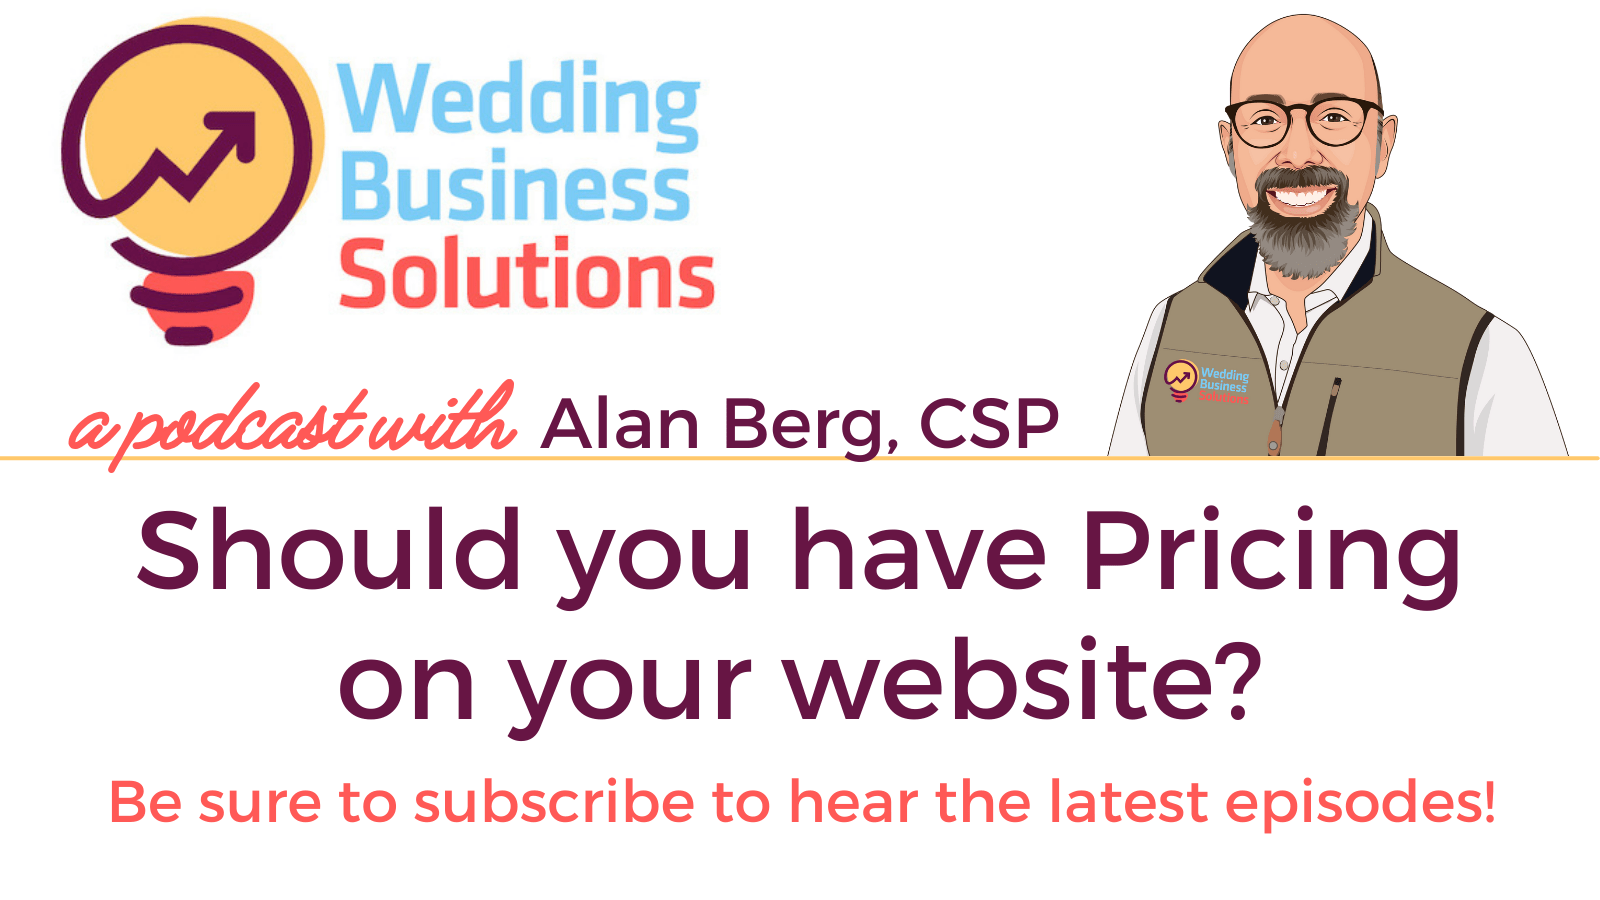 Wedding Business Solutions Podcast - Should you have Pricing on your website